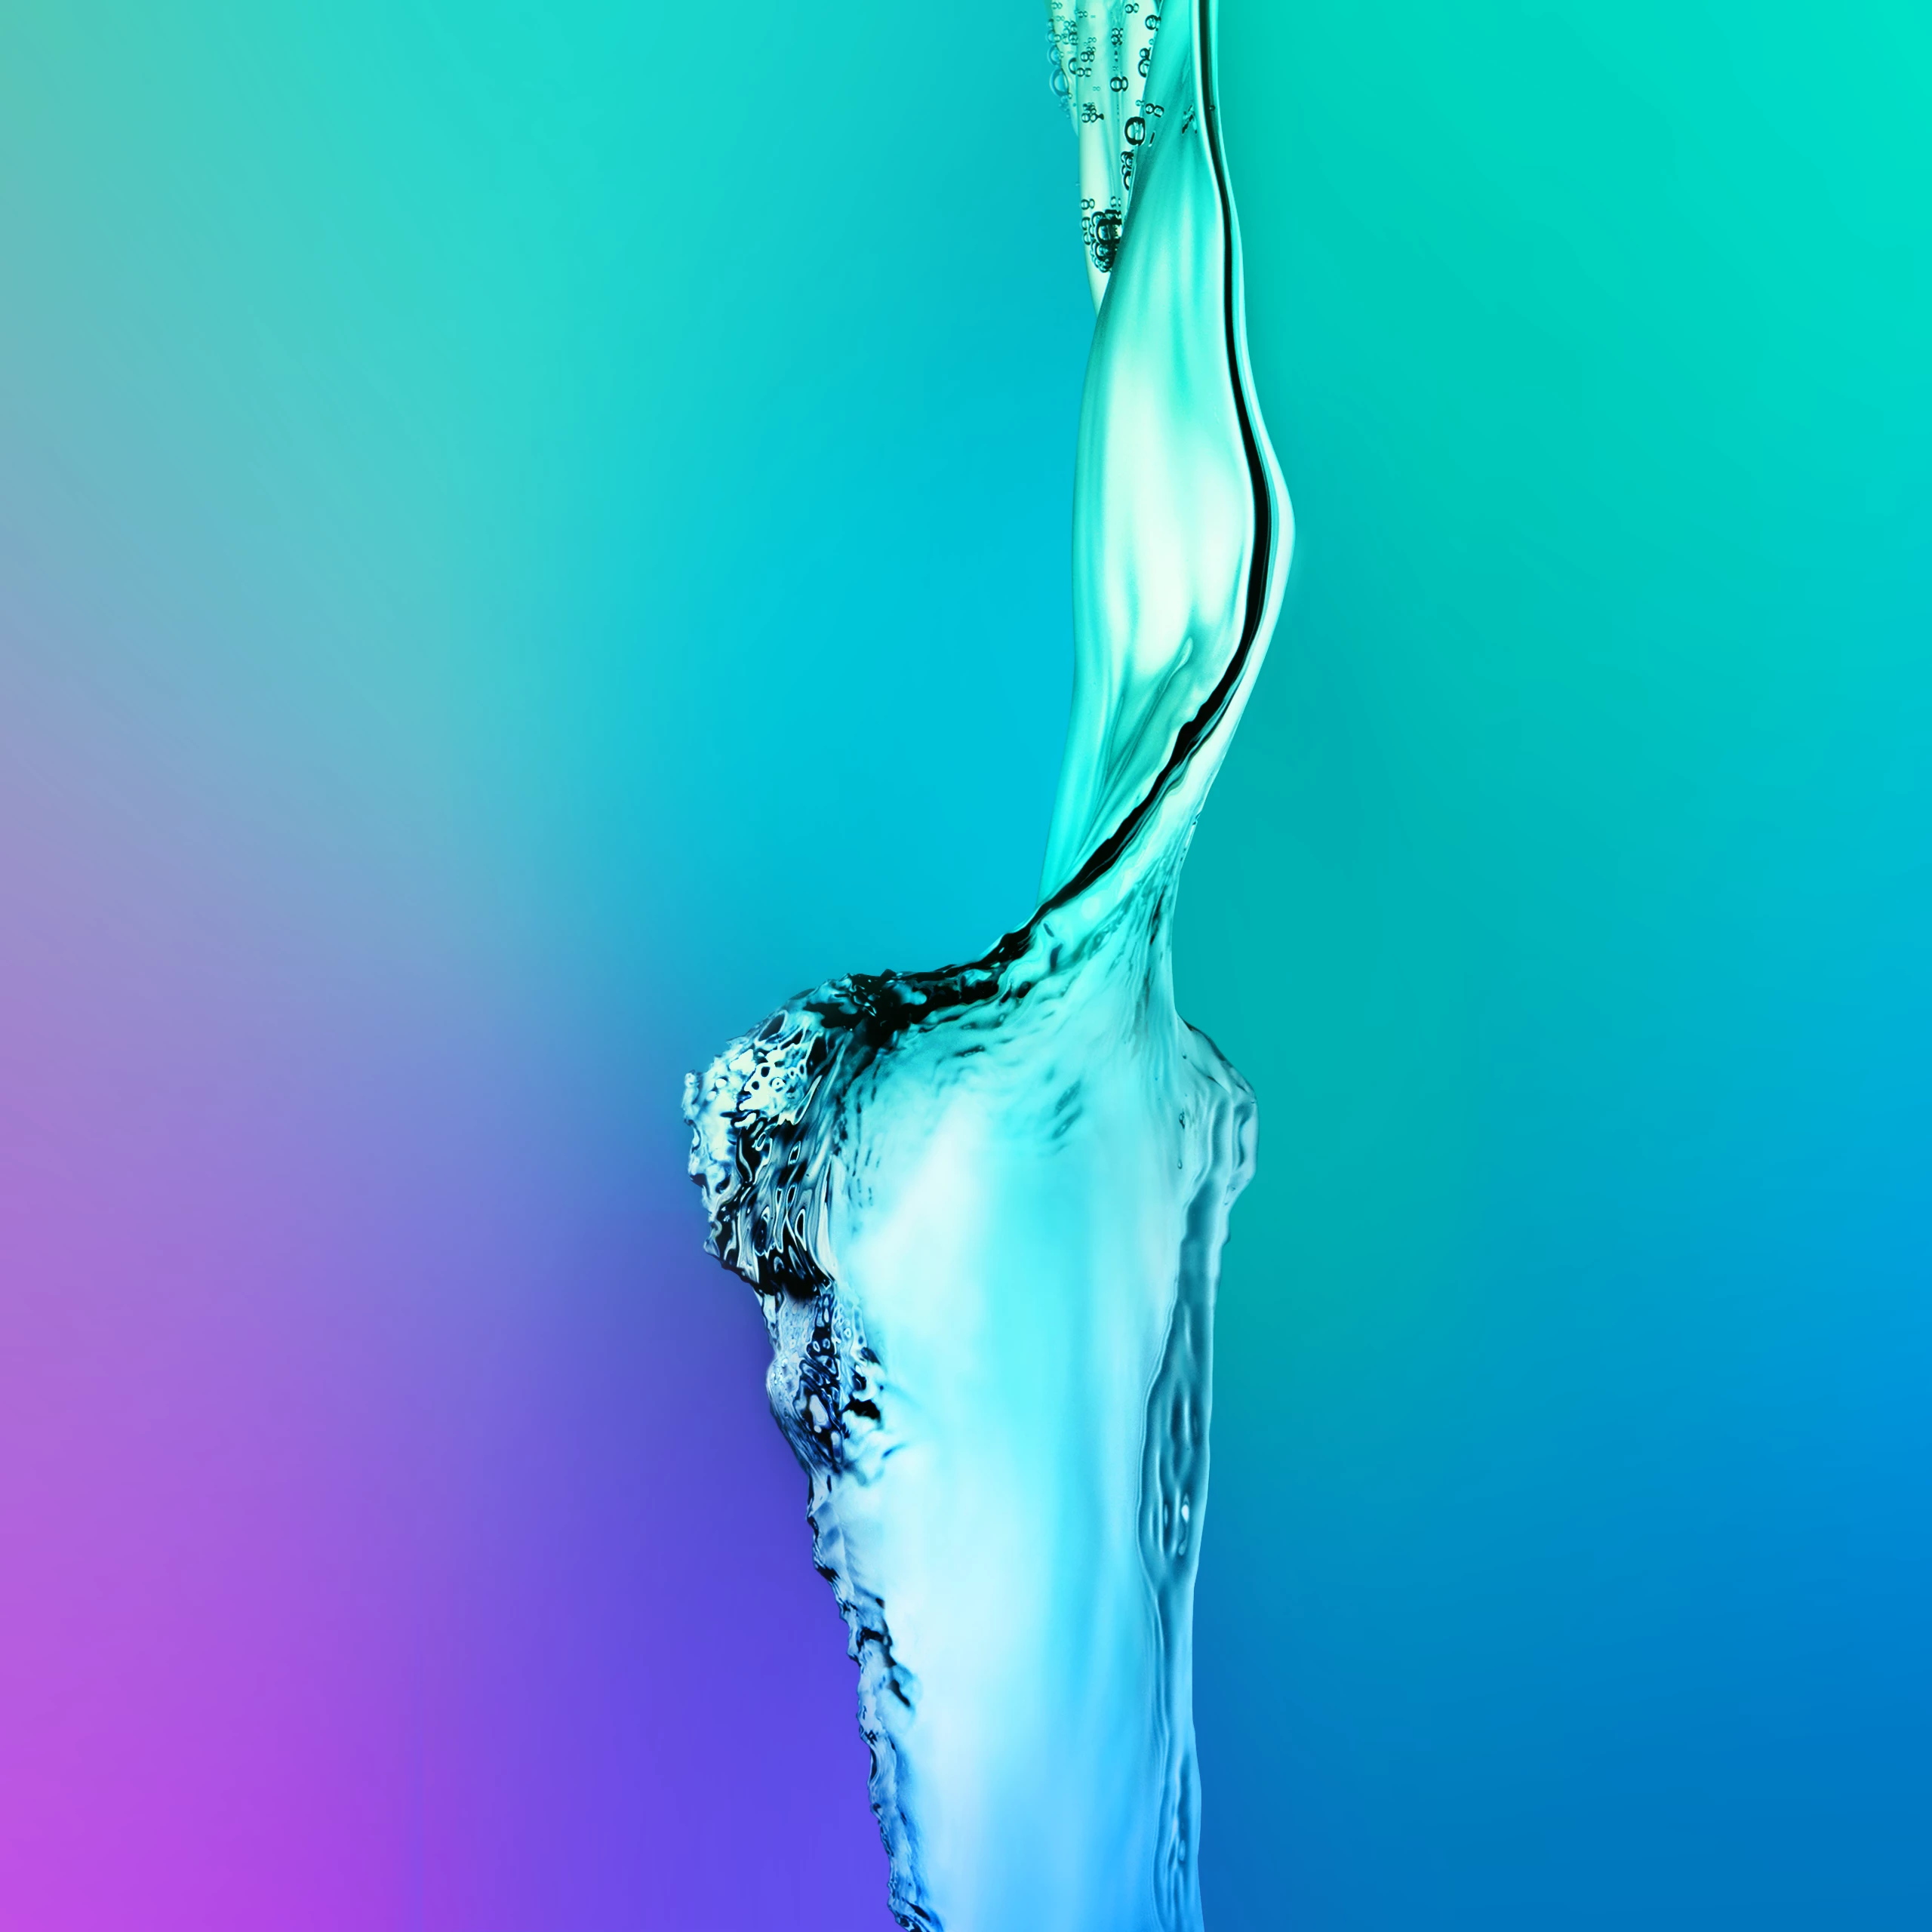 galaxy s6 edge plus wallpaper - wallpapersafari